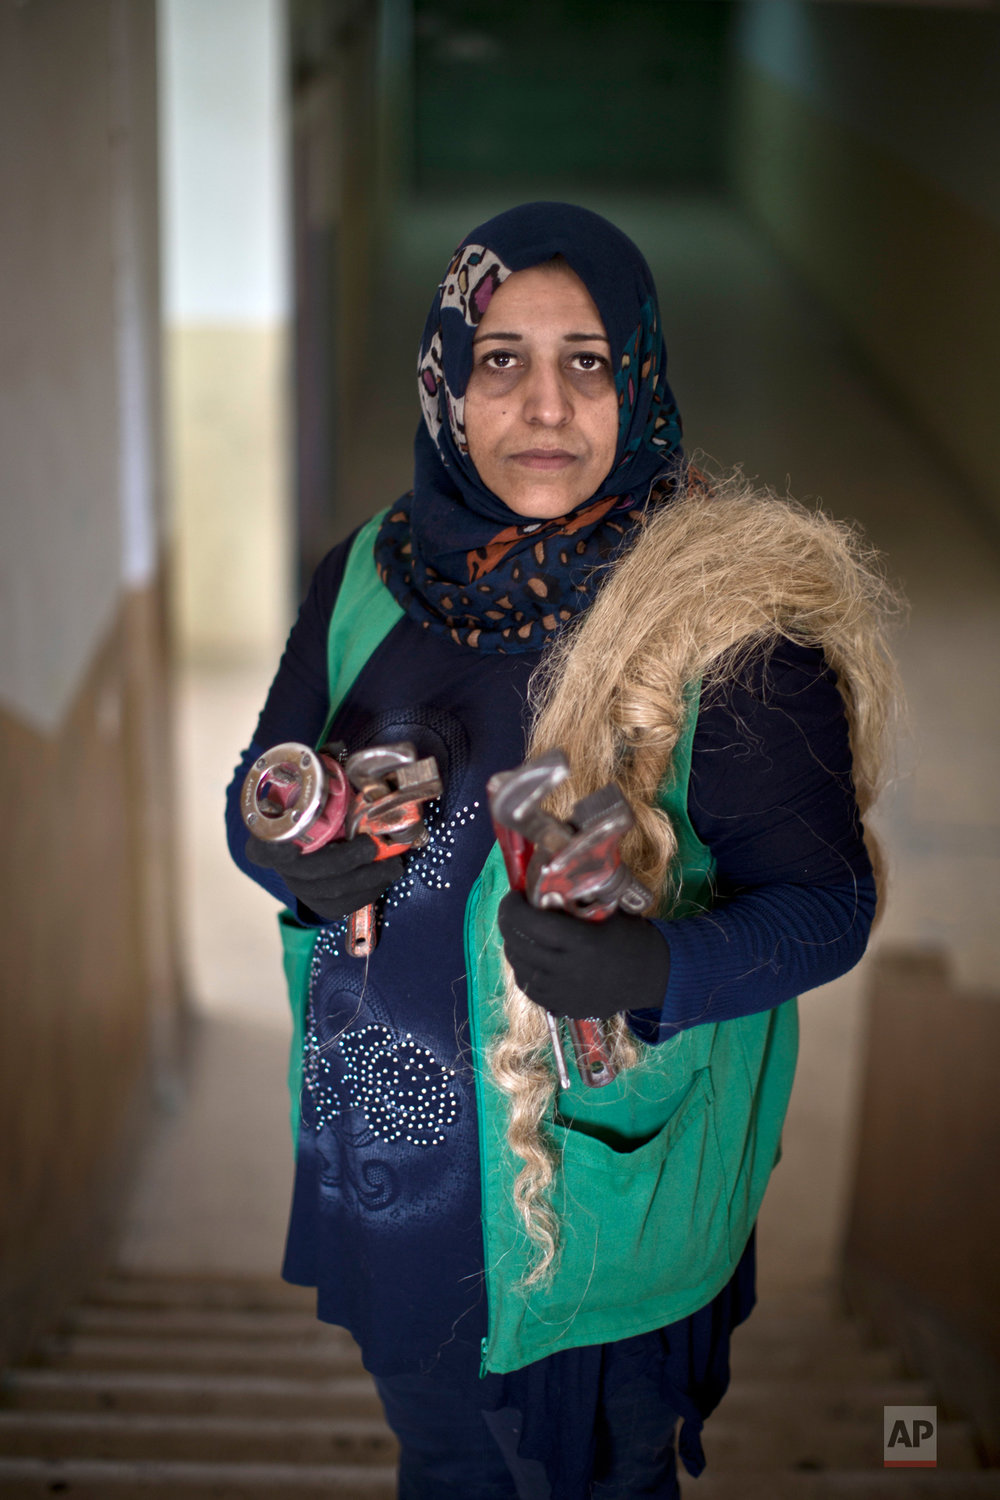 Jordanian plumber Maryam Mutlaq, 41, poses for a picture in a school in Zarqa, northeast of Amman, Jordan, Monday, March 21, 2016. (AP Photo/Muhammed Muheisen)